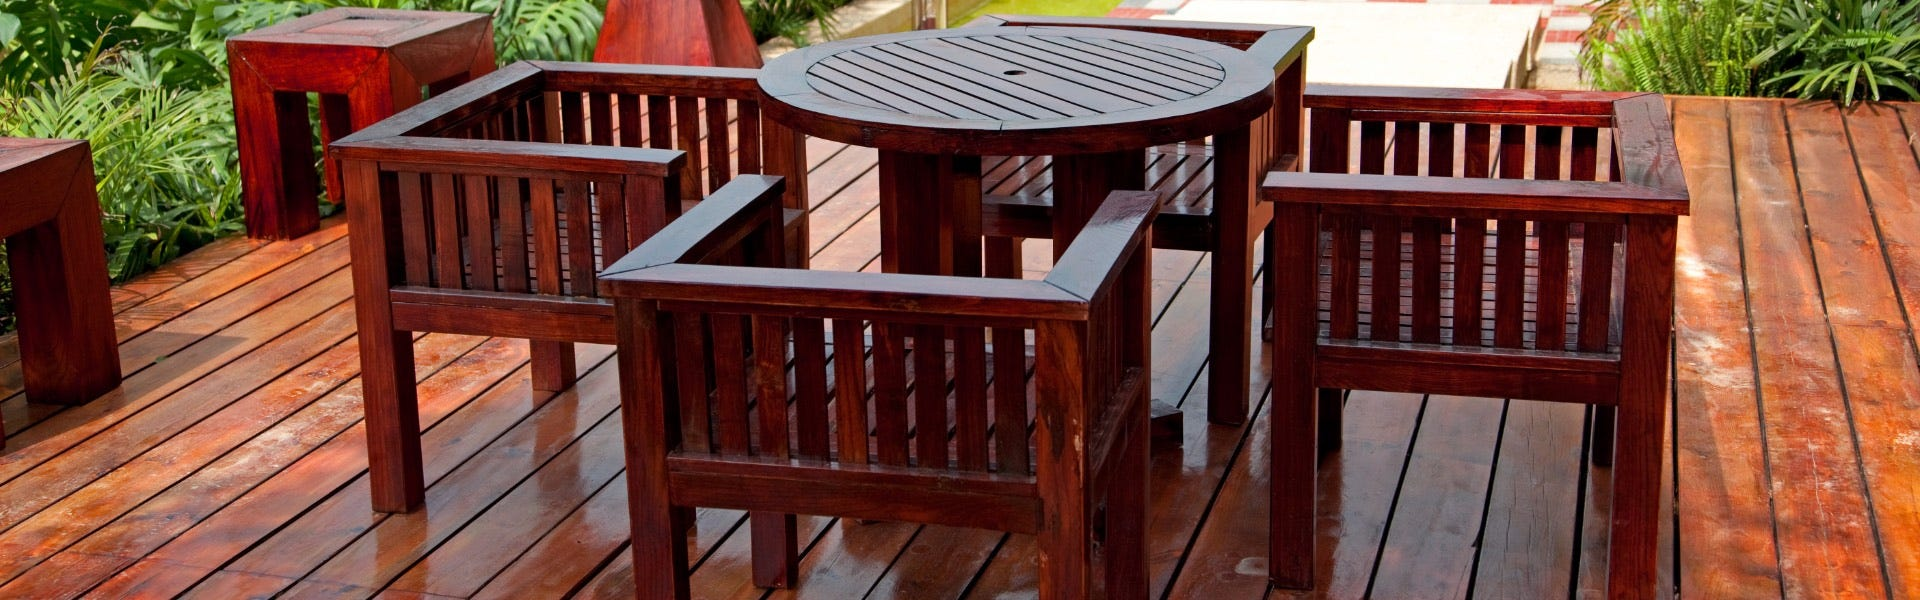 stained decking and wooden furniture